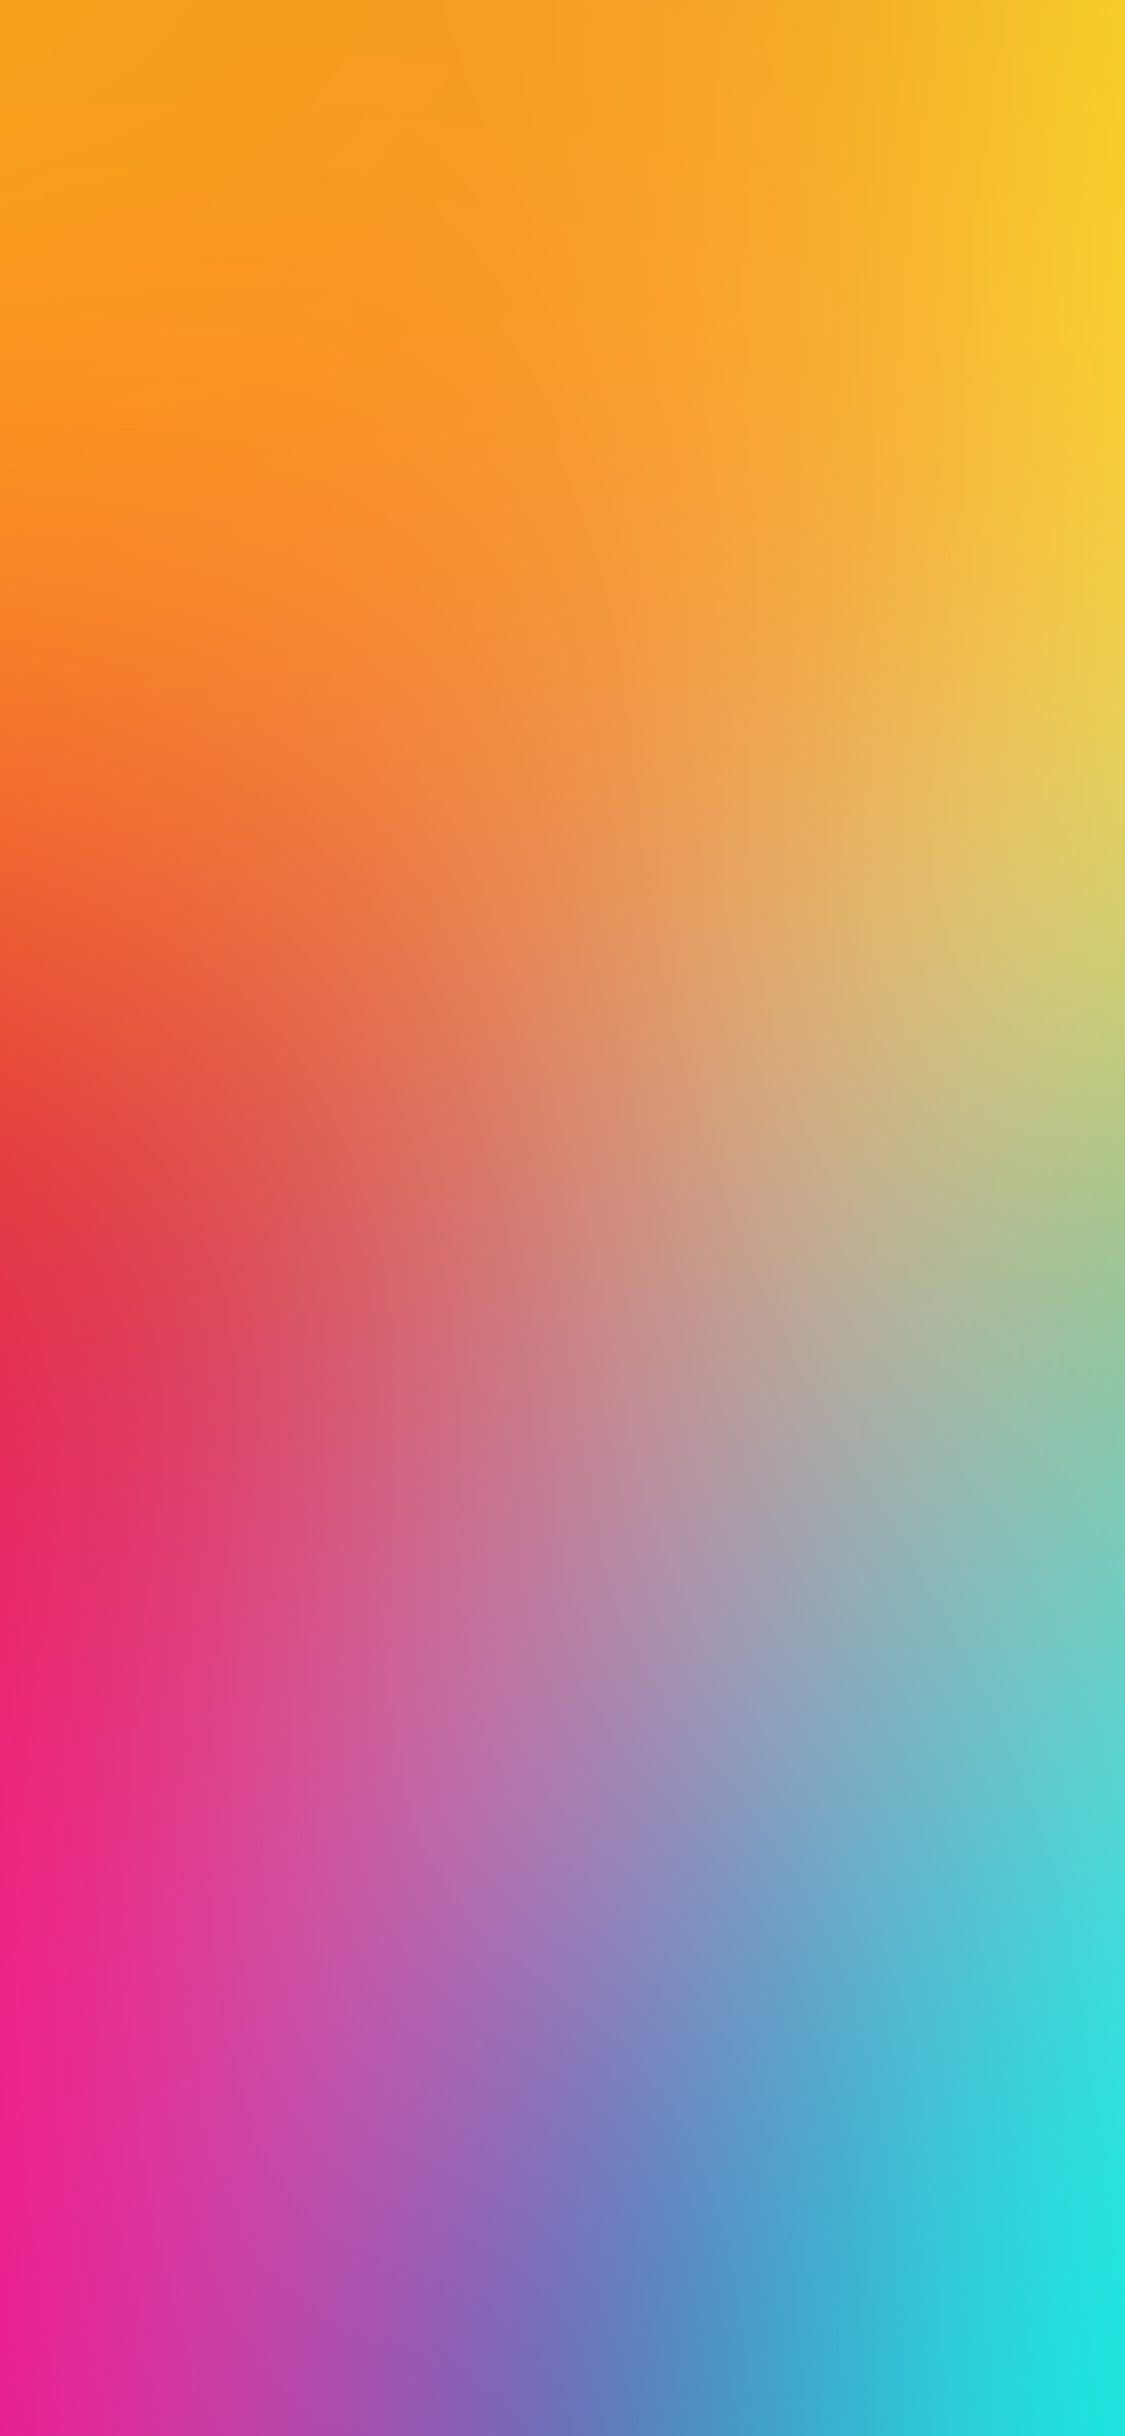 Ios 11 4 Wallpaper On Iphone X Iphone